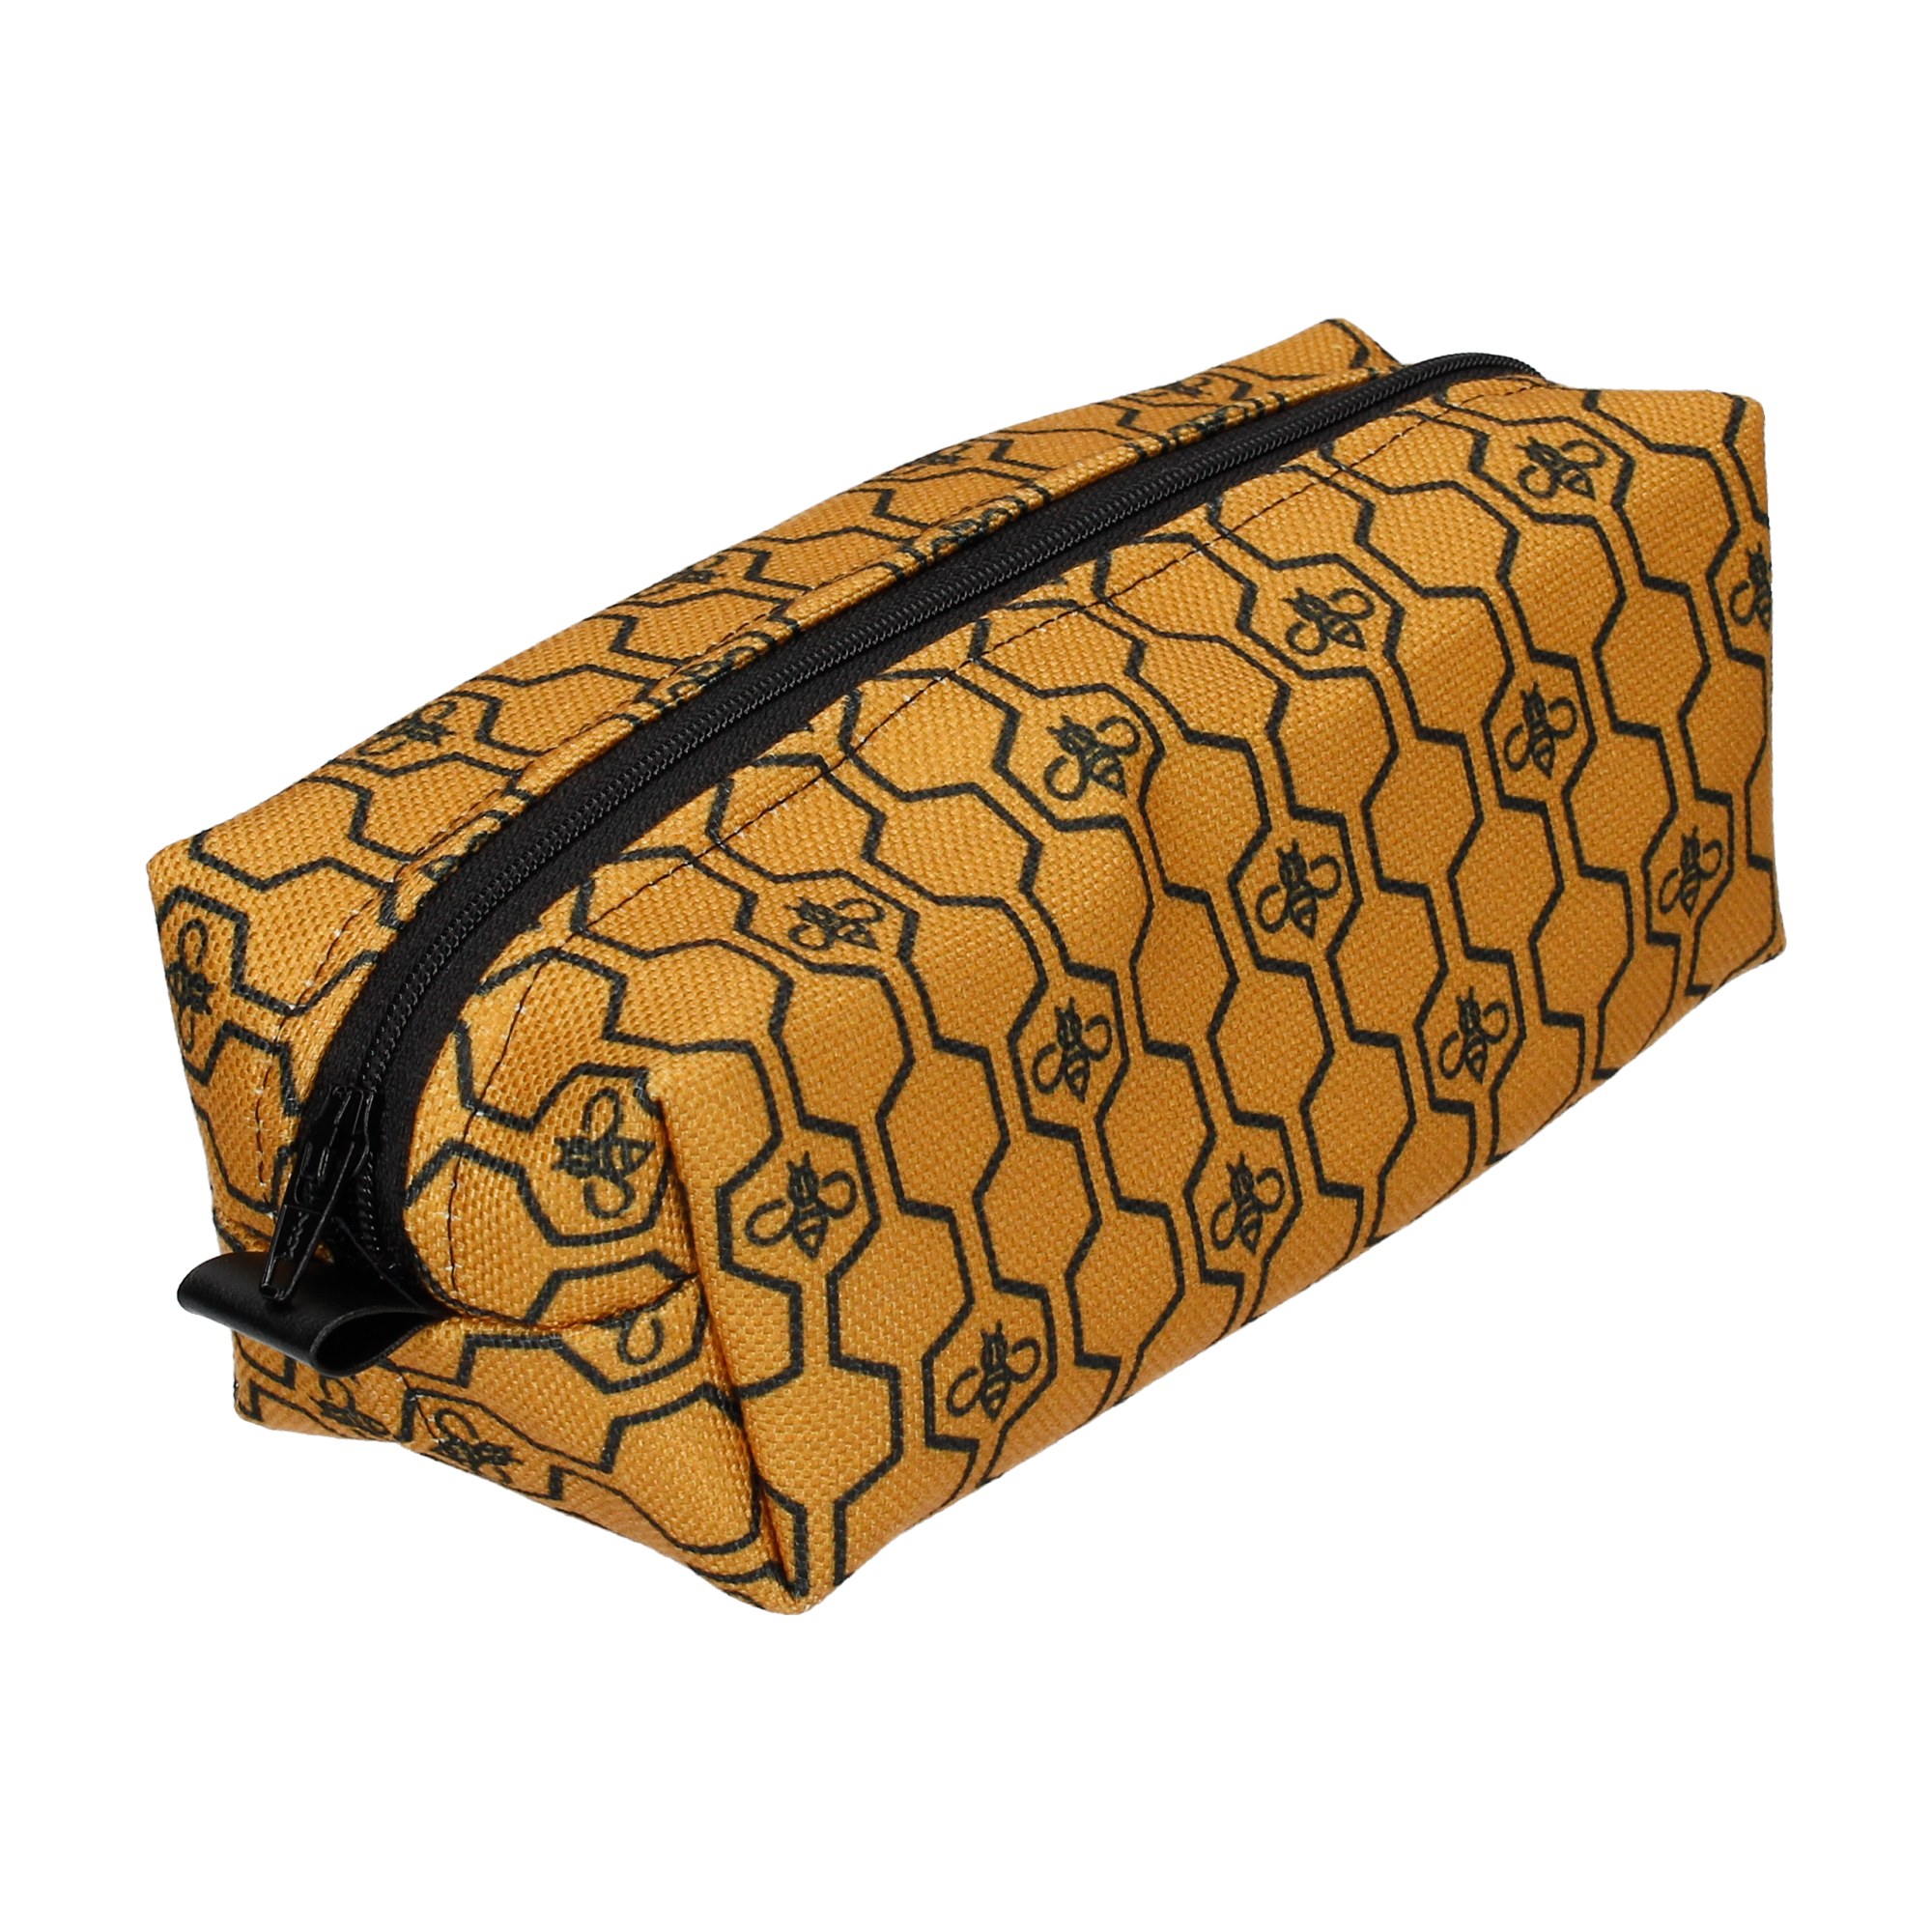 GEO HONEYCOMB IN GOLD WASH BAG (SMALL)